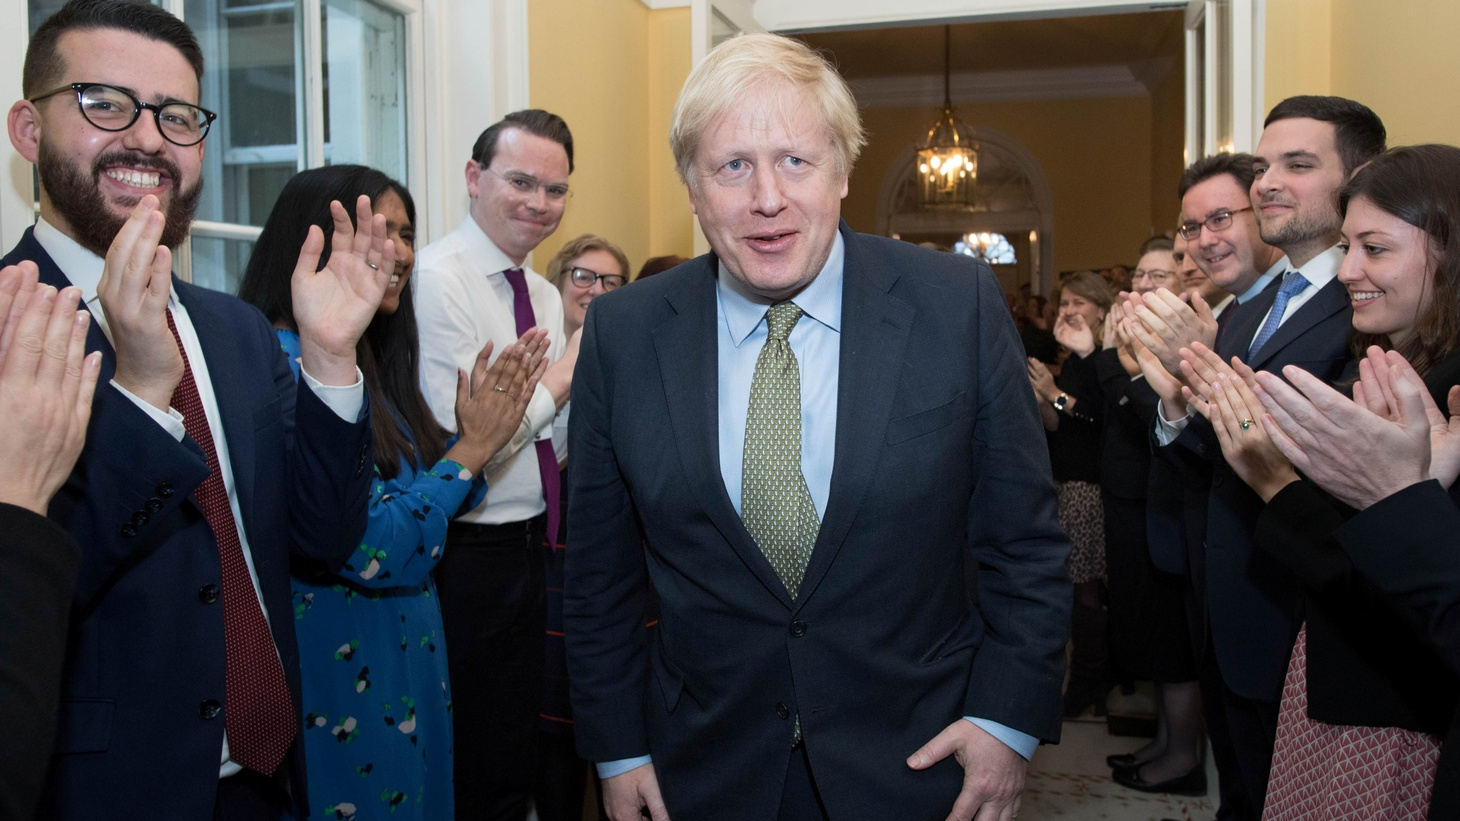 Britain's Prime Minister Boris Johnson is greeted by staff, arriving back at Downing Street, after meeting Queen Elizabeth and accepting her invitation to form a new government, in London, Britain December 13, 2019.